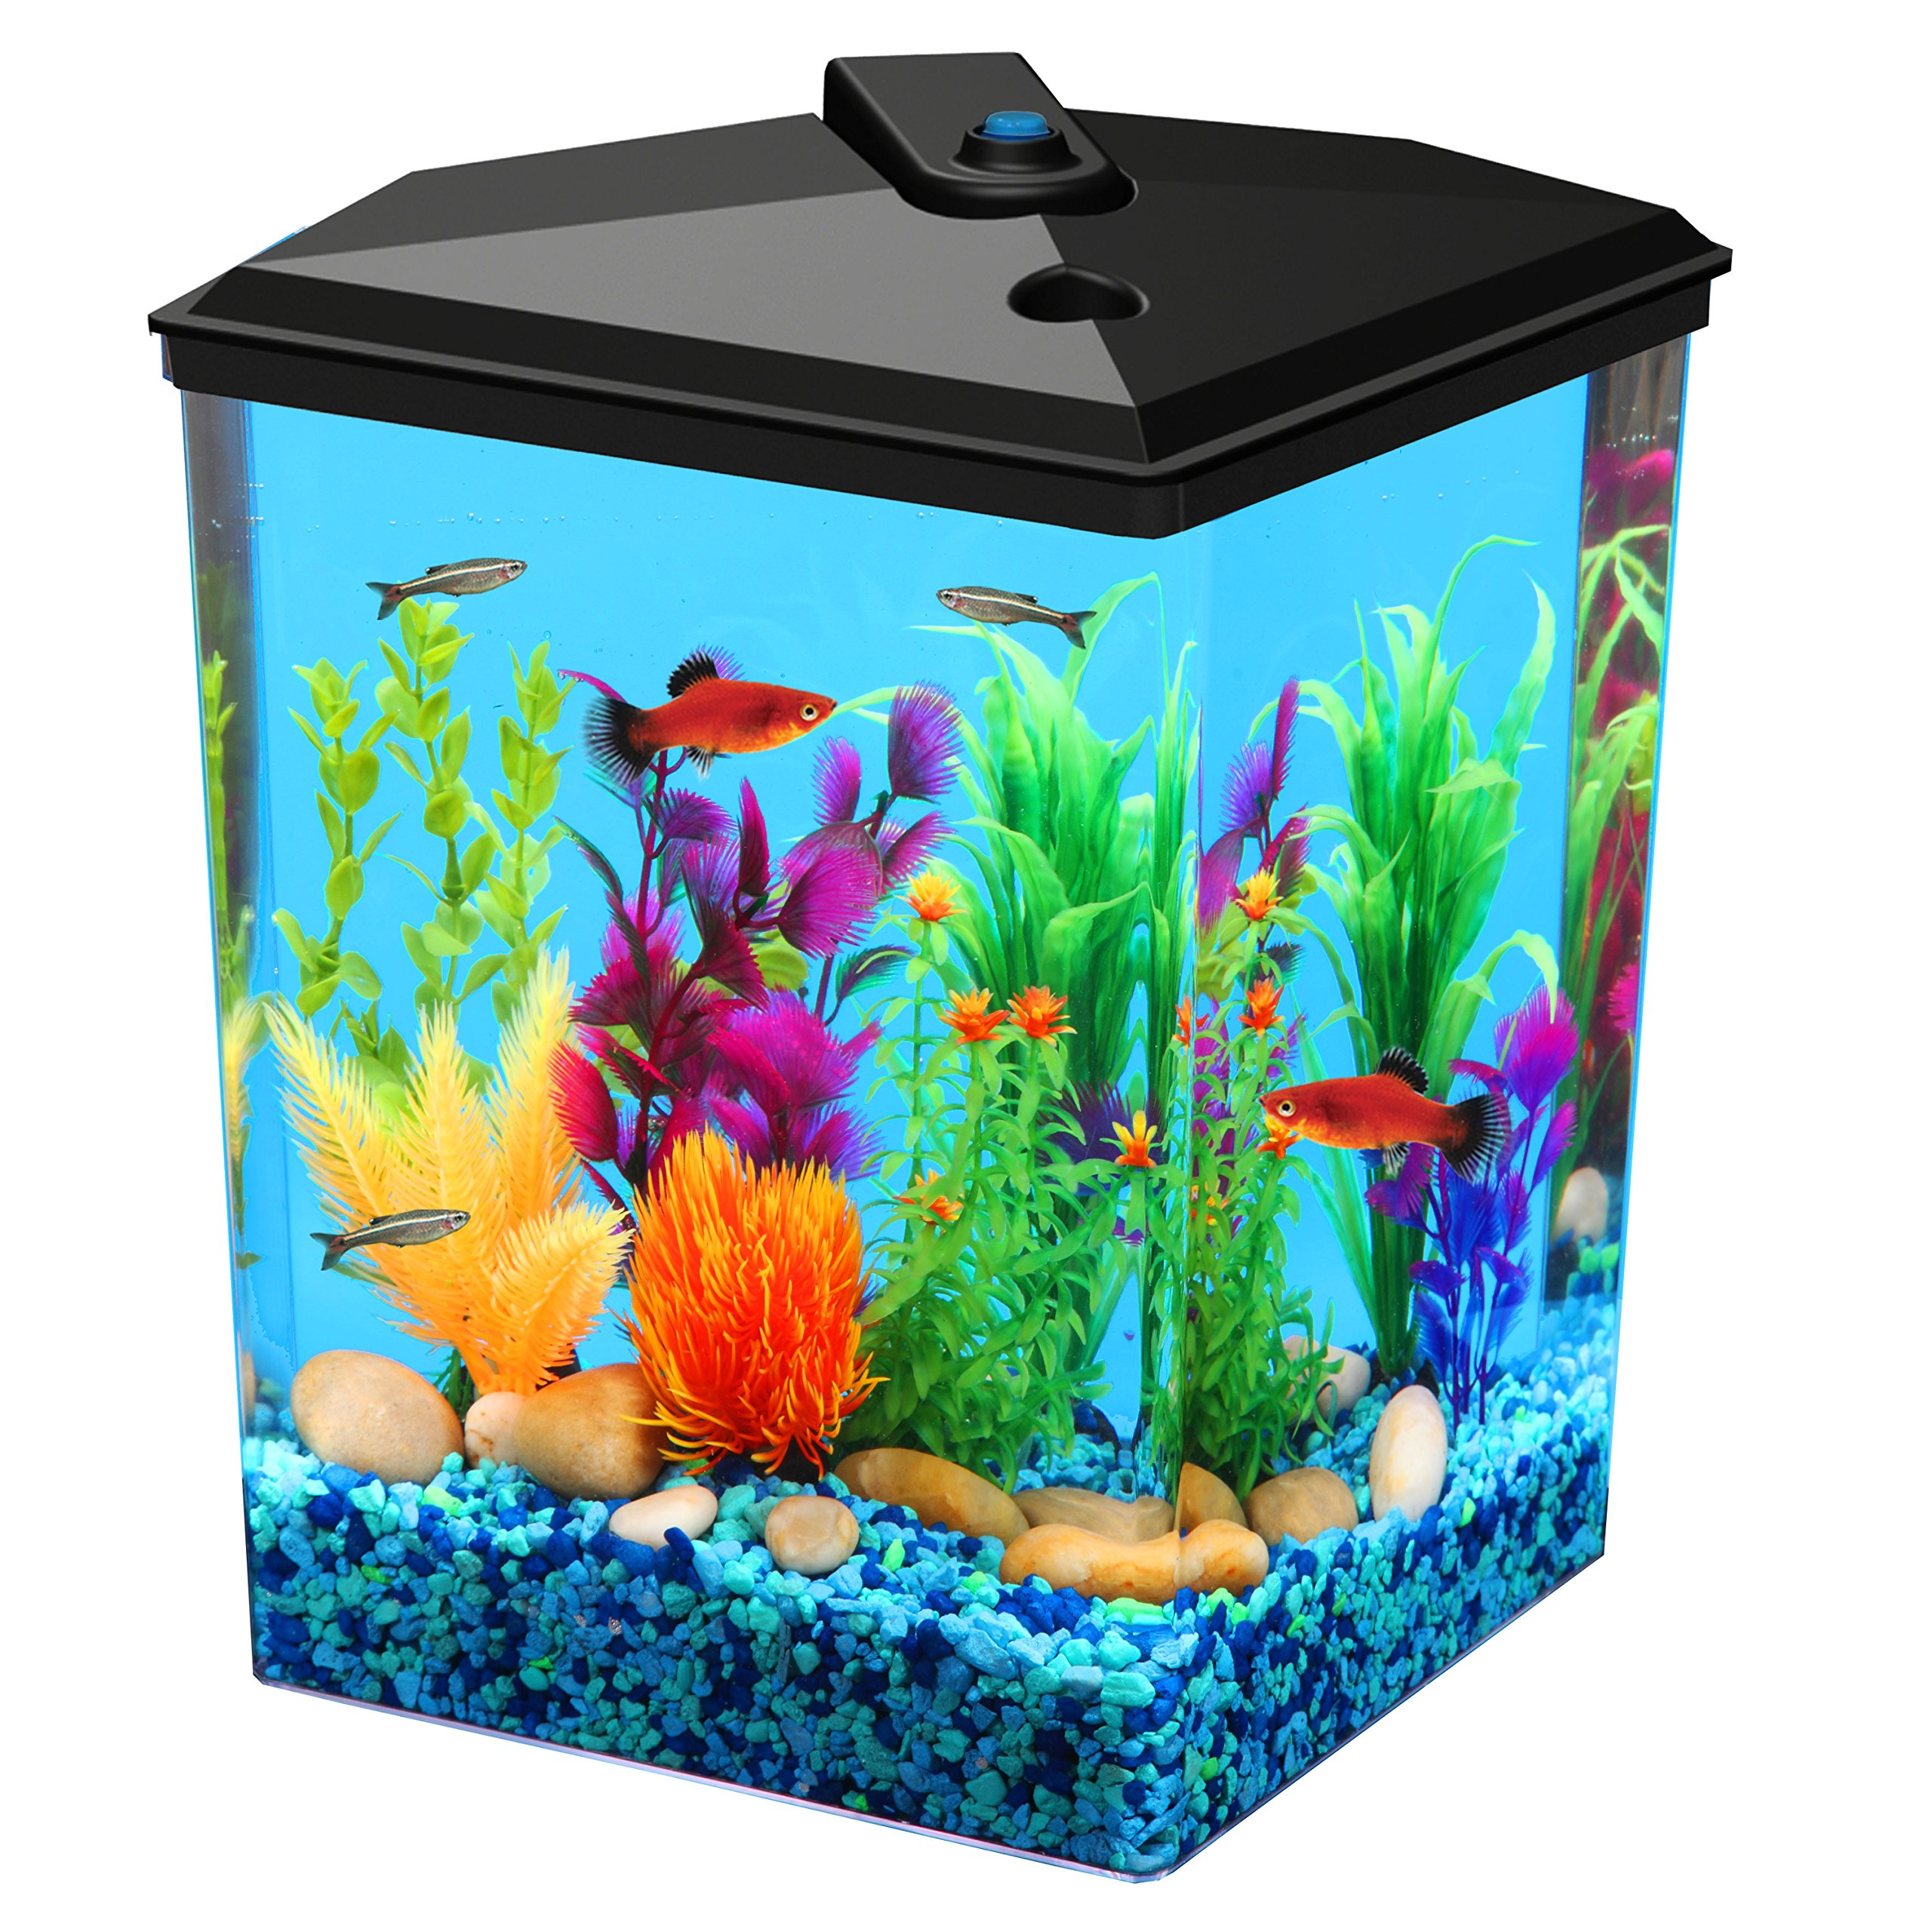 Koller Products AquaView 2.5 gallon Fish Tank - Power Filter - LED Lighting by Koller Products